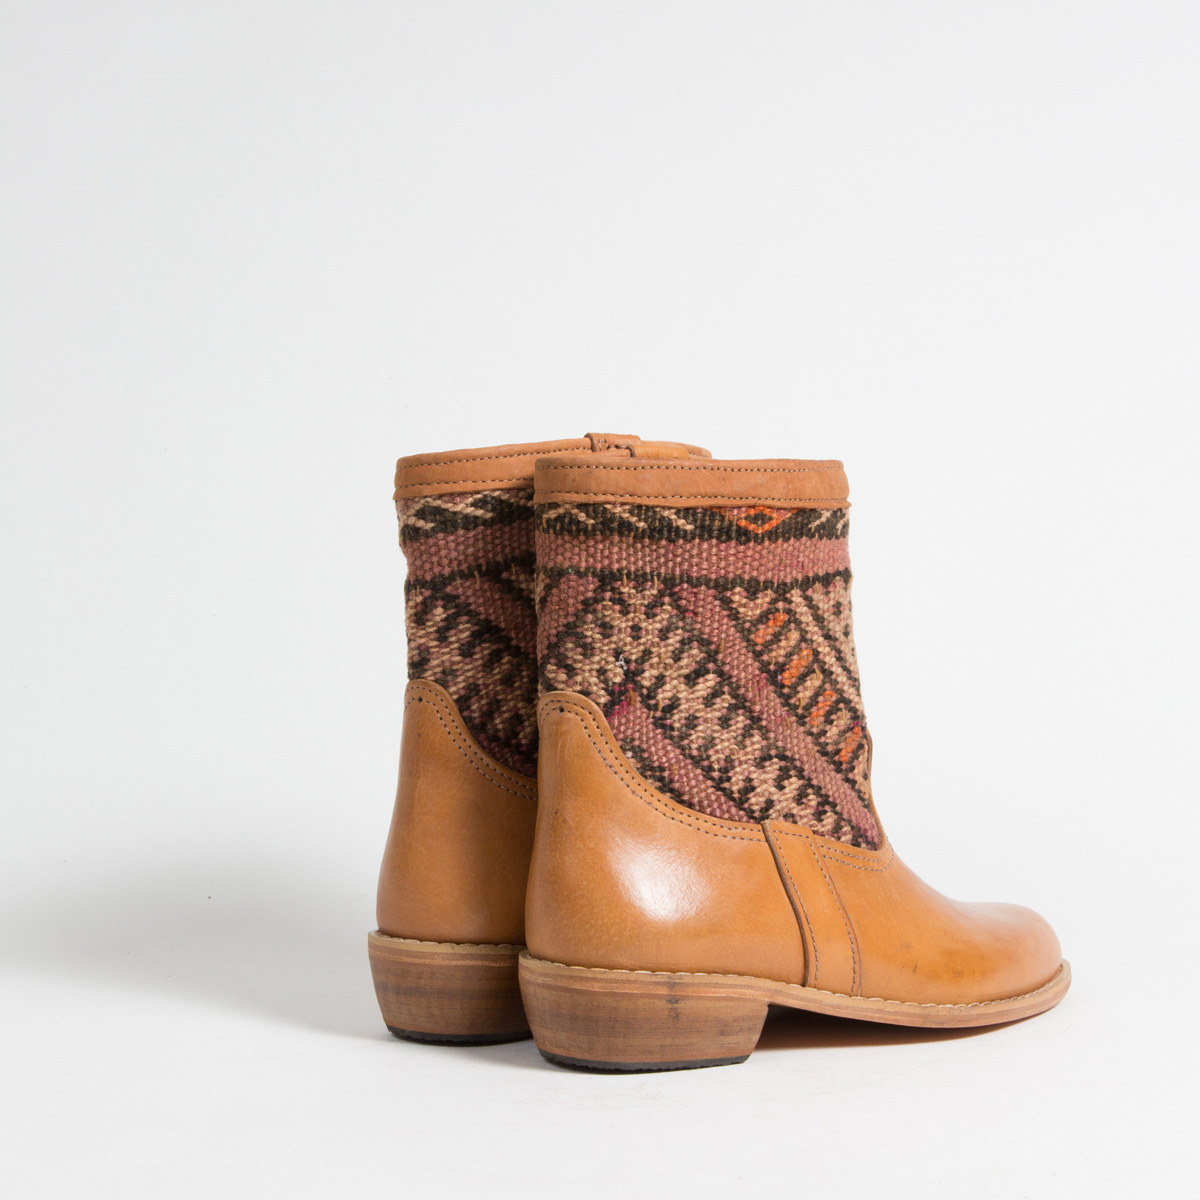 Bottines Kilim cuir mababouche artisanales (Réf. GC3-39)